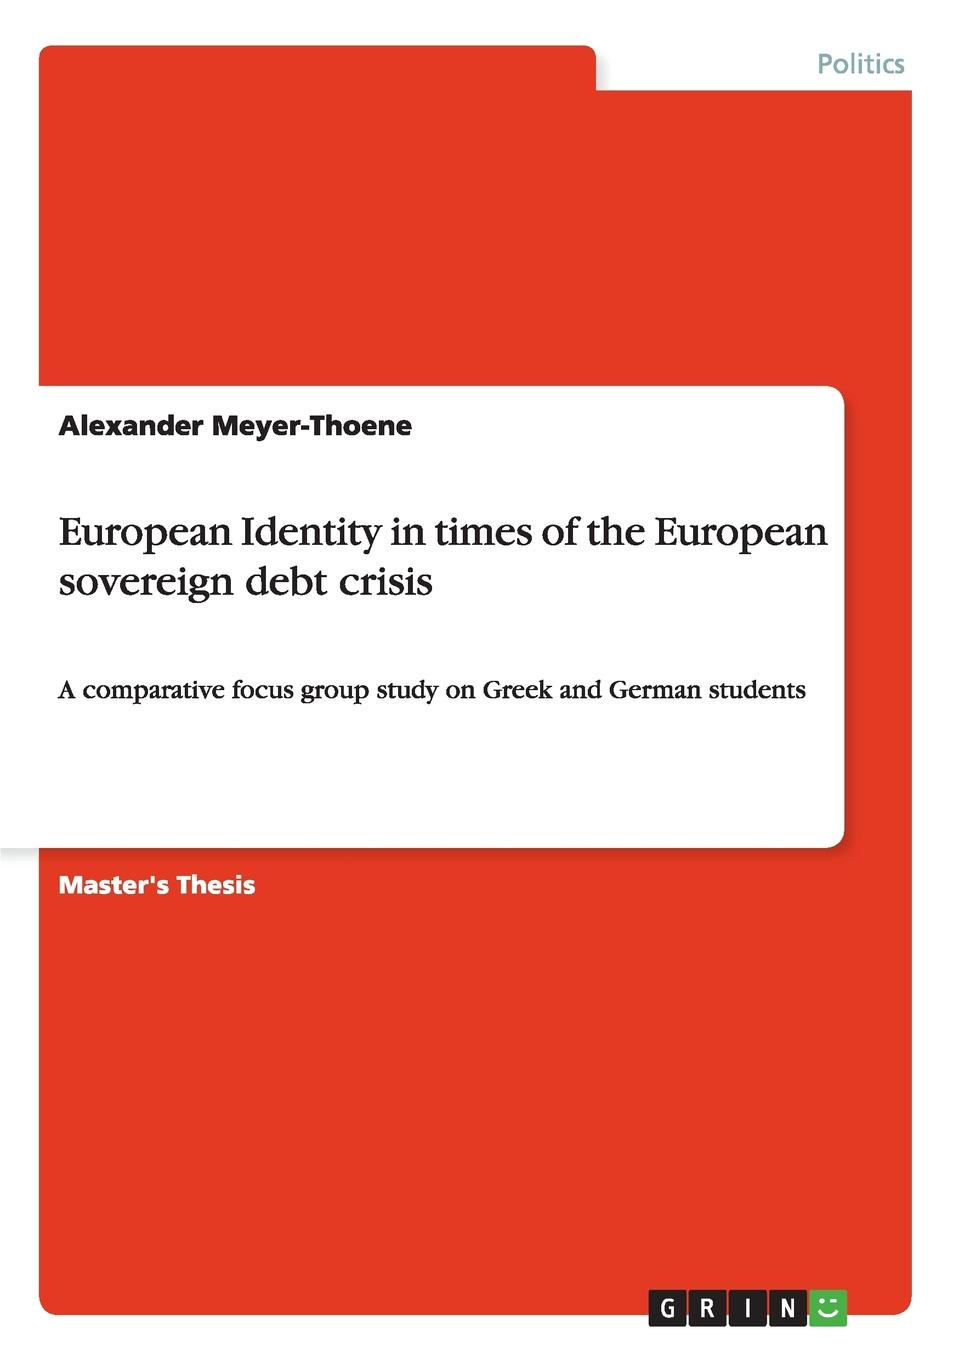 Alexander Meyer-Thoene European Identity in Times of the European Sovereign Debt Crisis veronika gaßner the united kingdom and the european migrant crisis 2015 16 public dialogue and government action